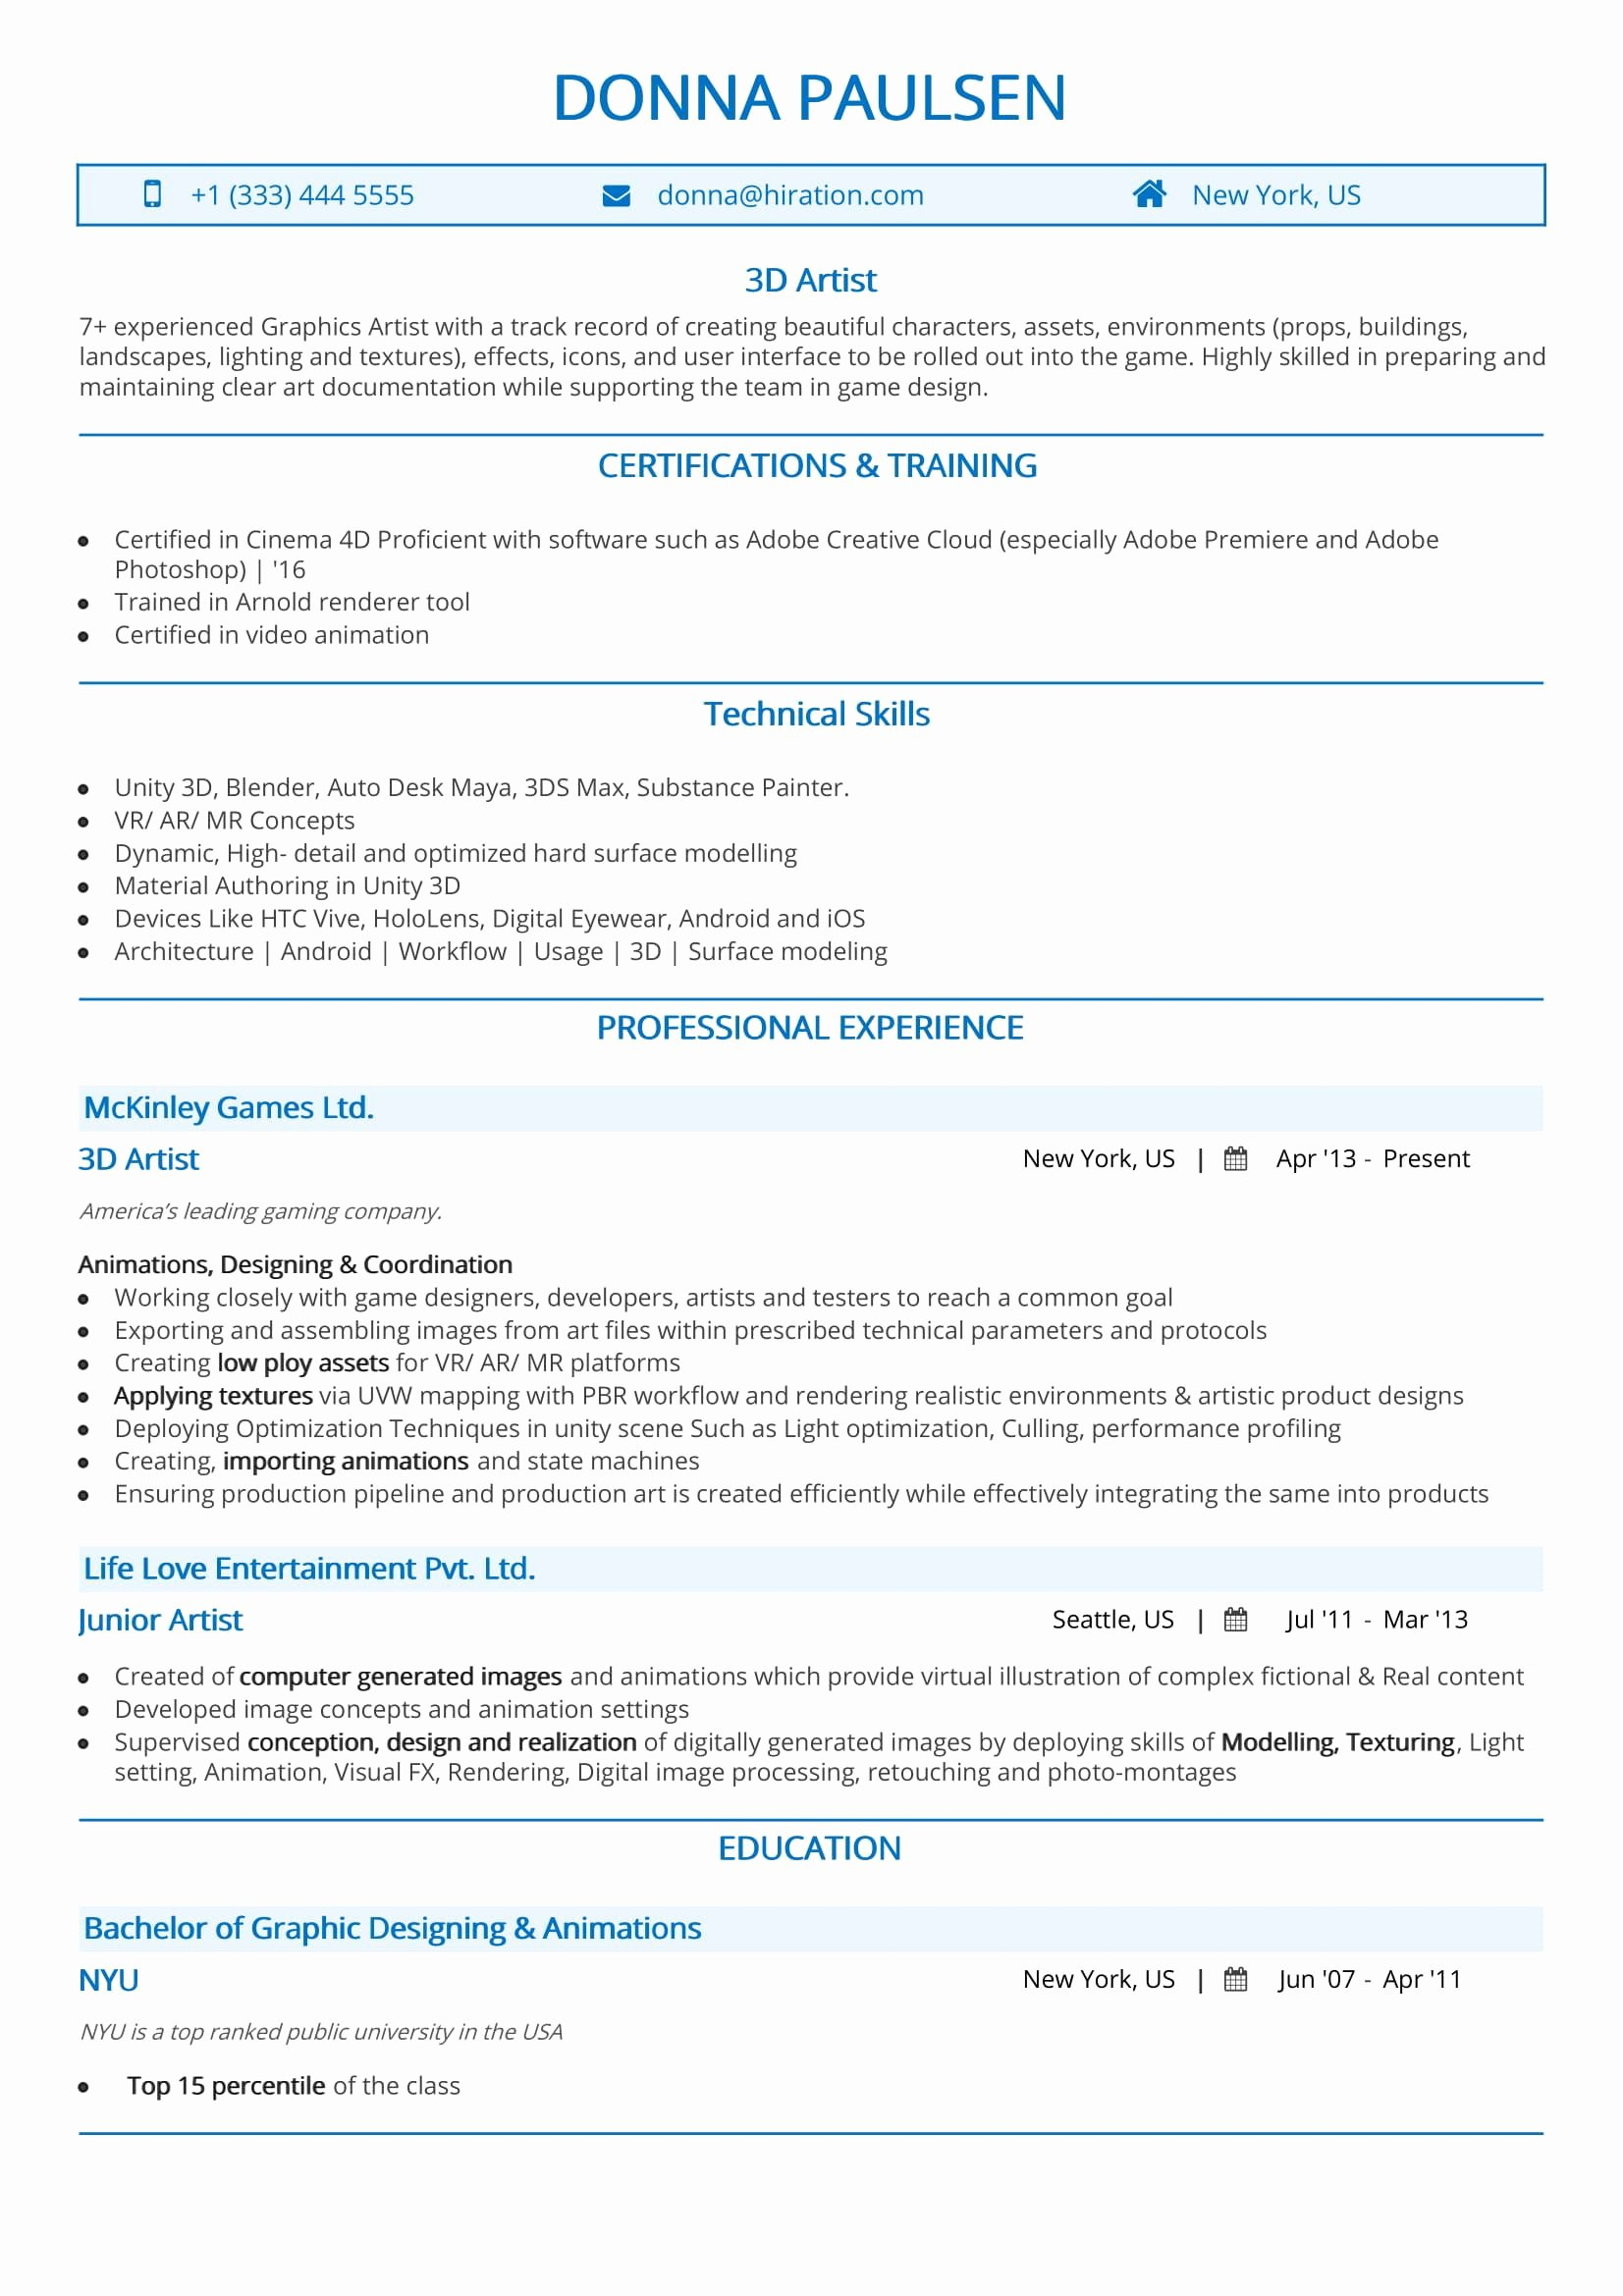 Fine Artist Resume Template Fresh Artist Resume the 2019 Guide to Art Resume with Samples & Examples